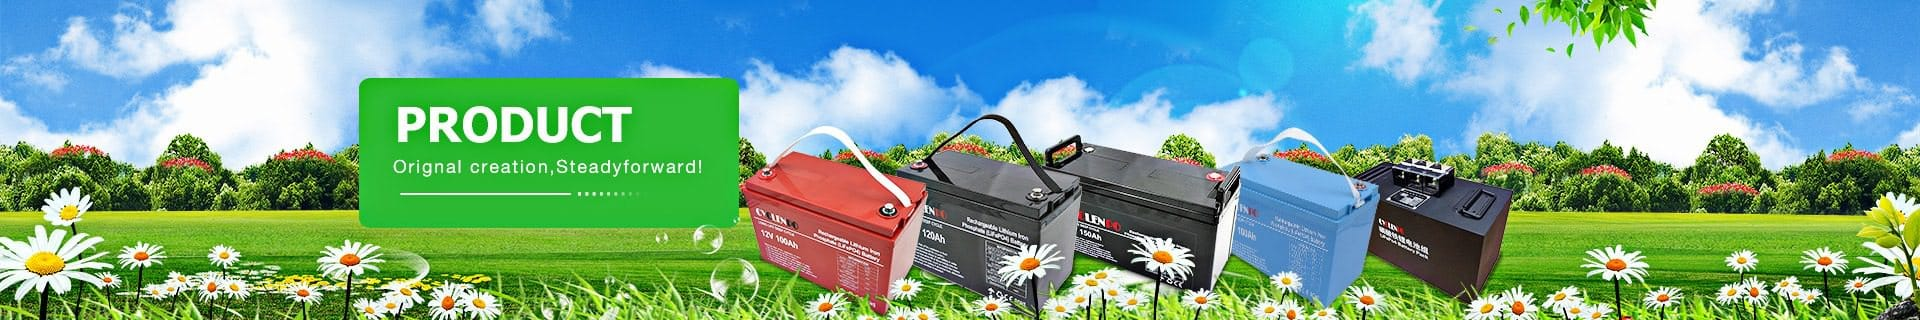 48v lifepo4 battery, 48v lifepo4 battery pack, deep cycle battery manufacturers